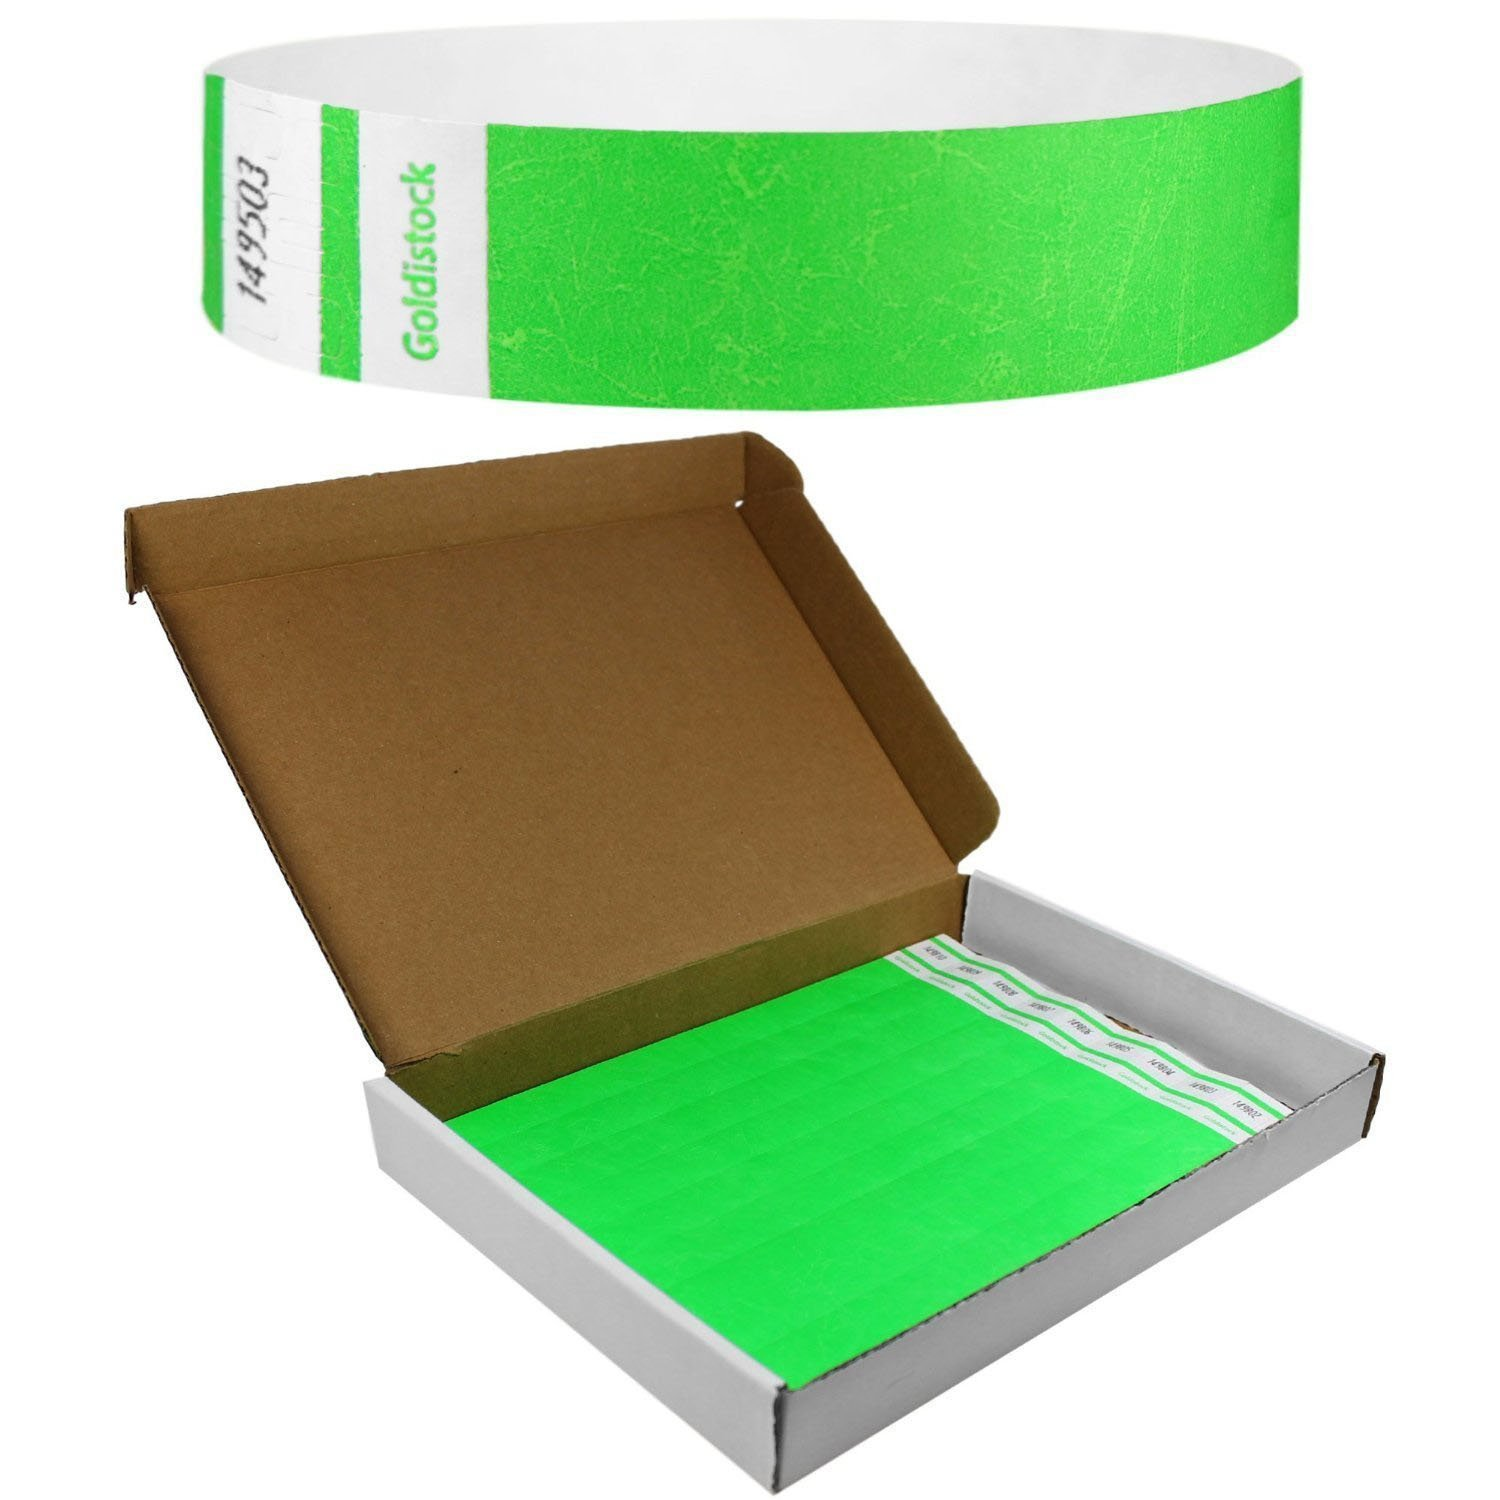 "Goldistock Select Series with Box - Tyvek Wristbands Day Glow Neon Green 500 Count - 3/4"" Premium Tyvek - Event Identification Bands (Paper - Like Texture)"